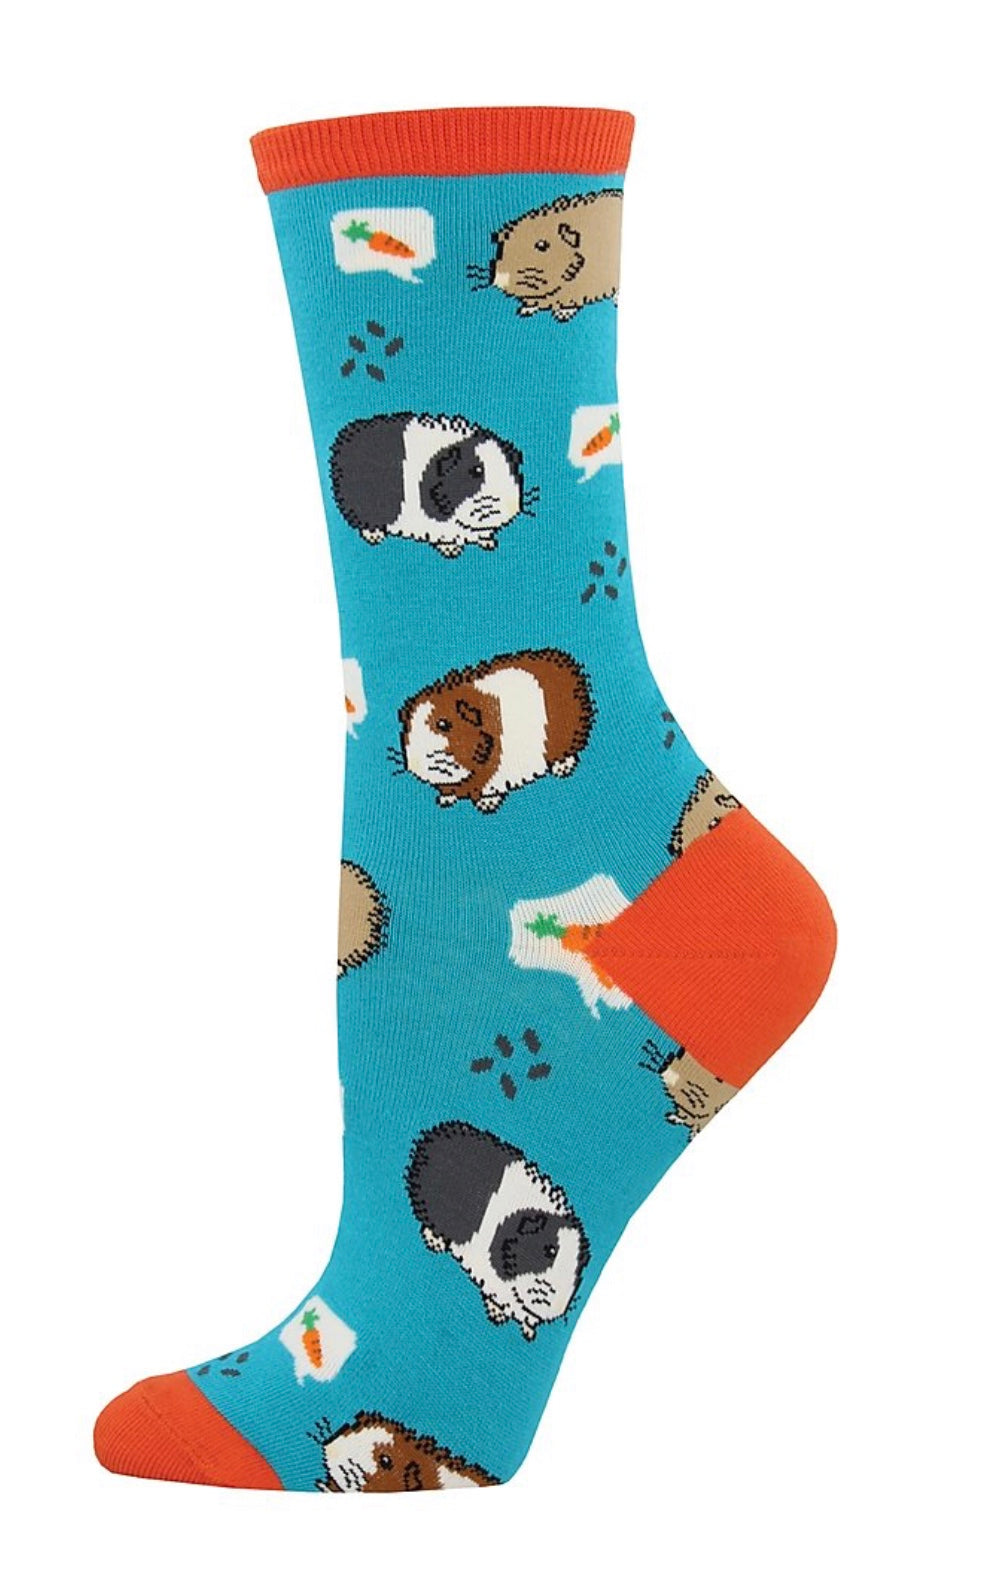 Socks - Women's Guinea Pigs